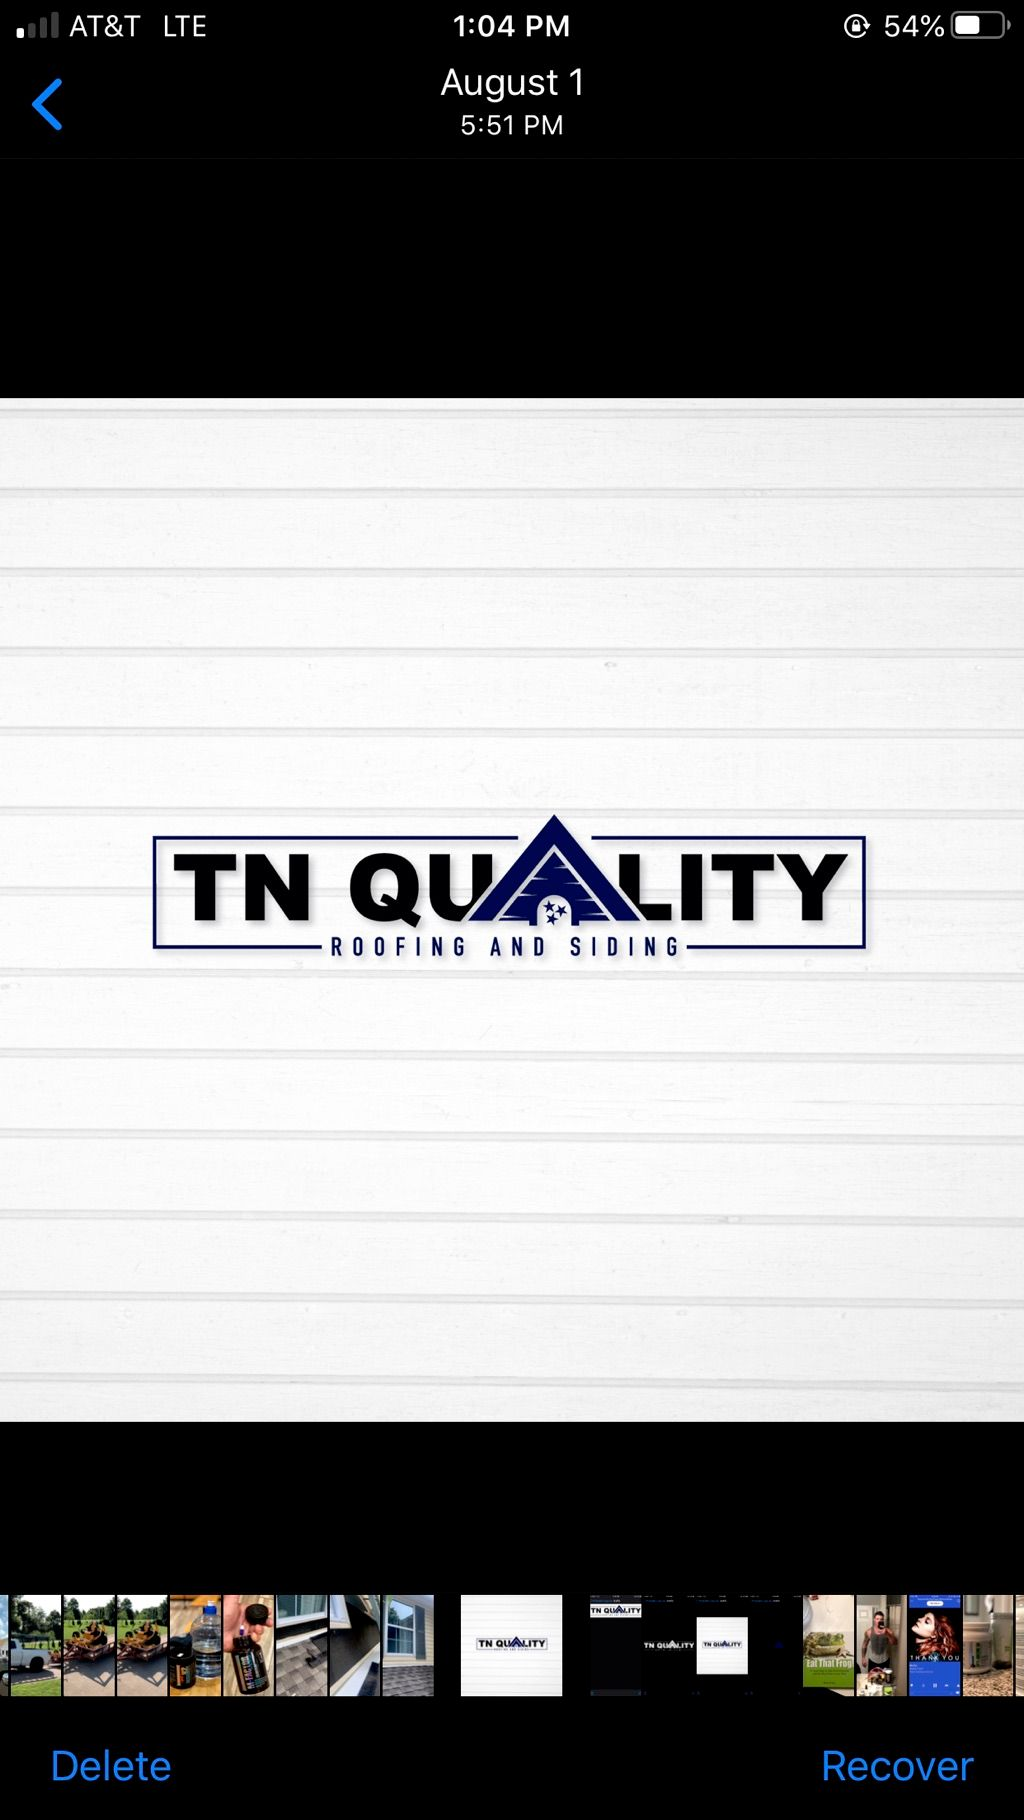 TN Quality Roofing & Siding